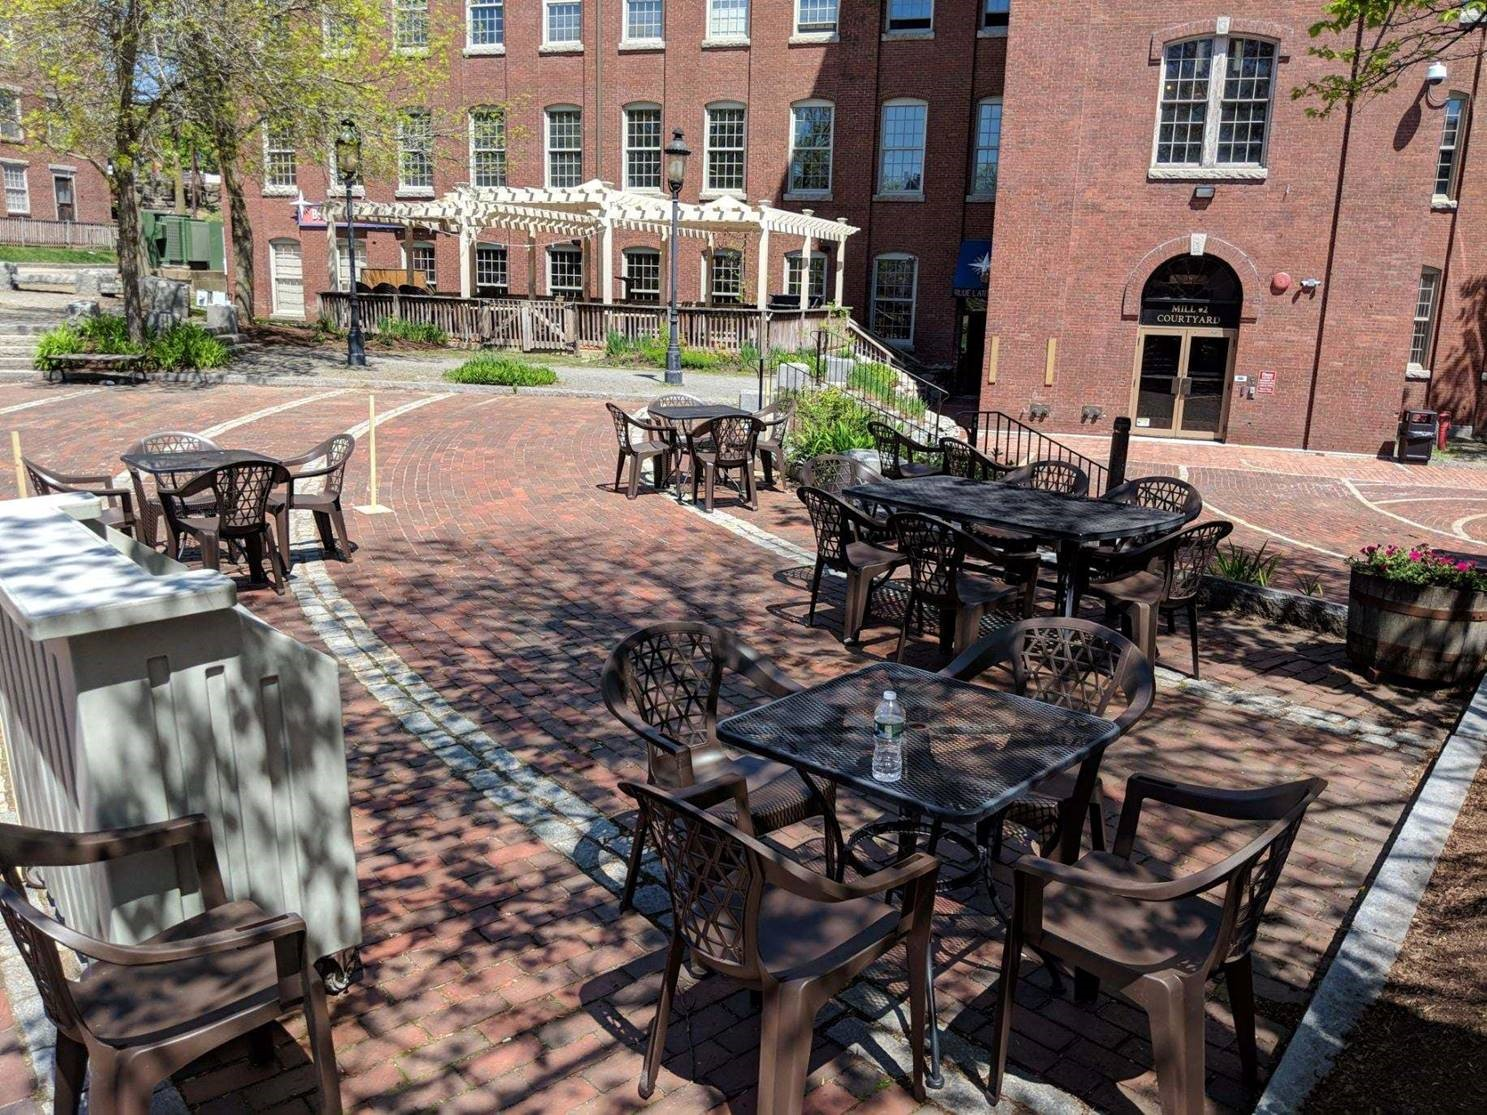 Courtyard seating available on certain days